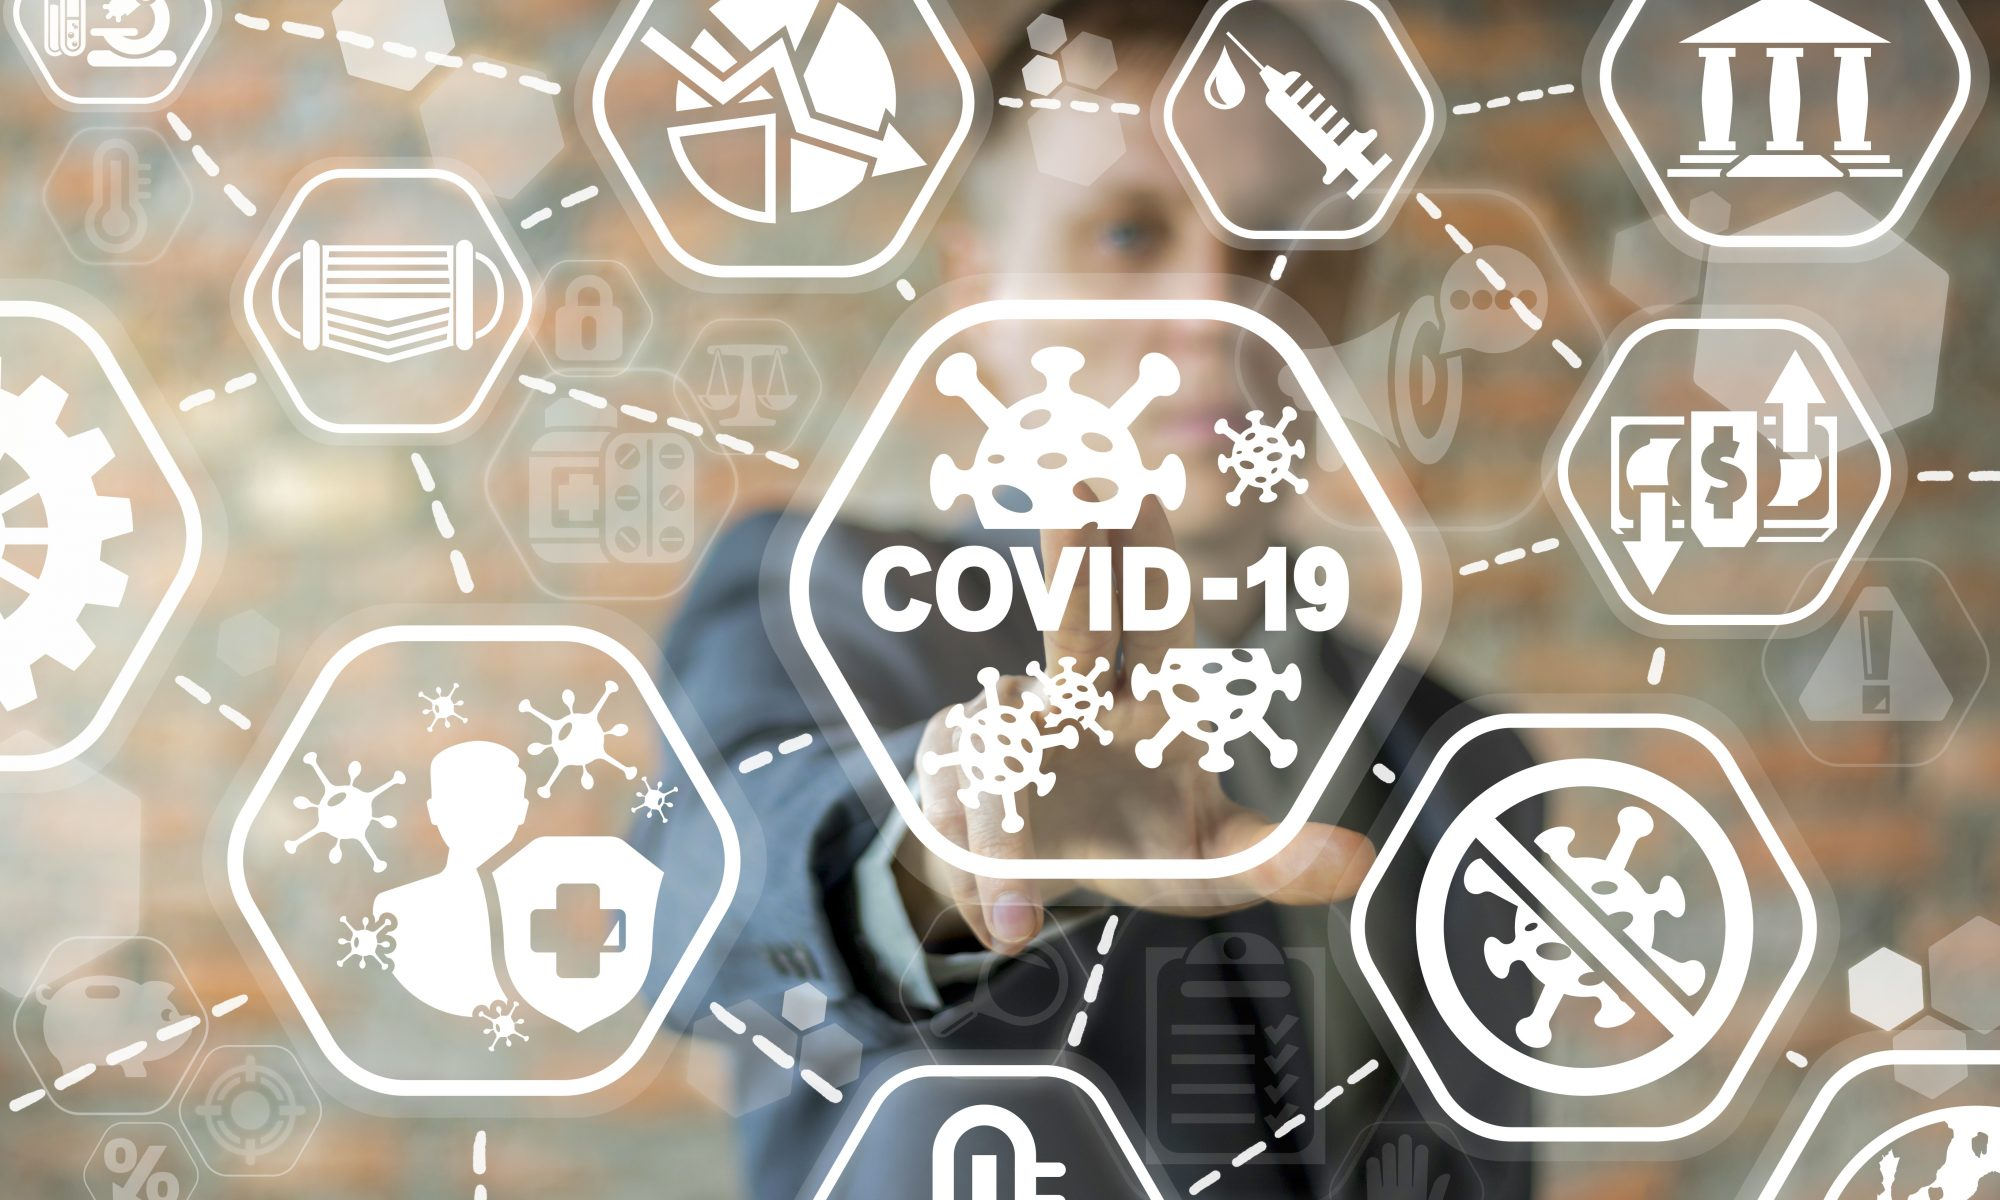 Hazard Pay for Health Care Providers During COVID-19